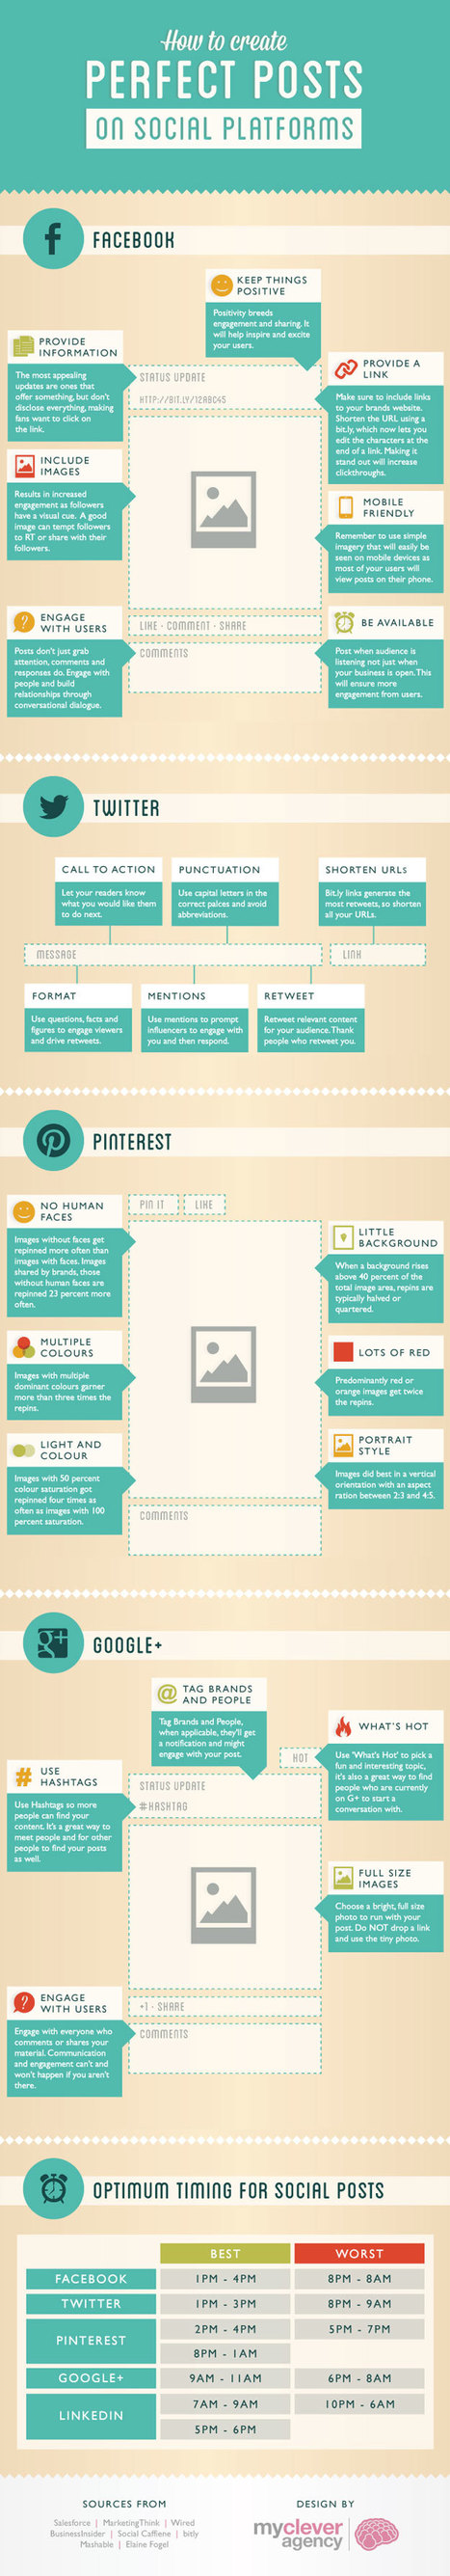 How To Create Effective Posts on the 4 Main Social Sites [Infographic] | Social Media Superstar | Scoop.it